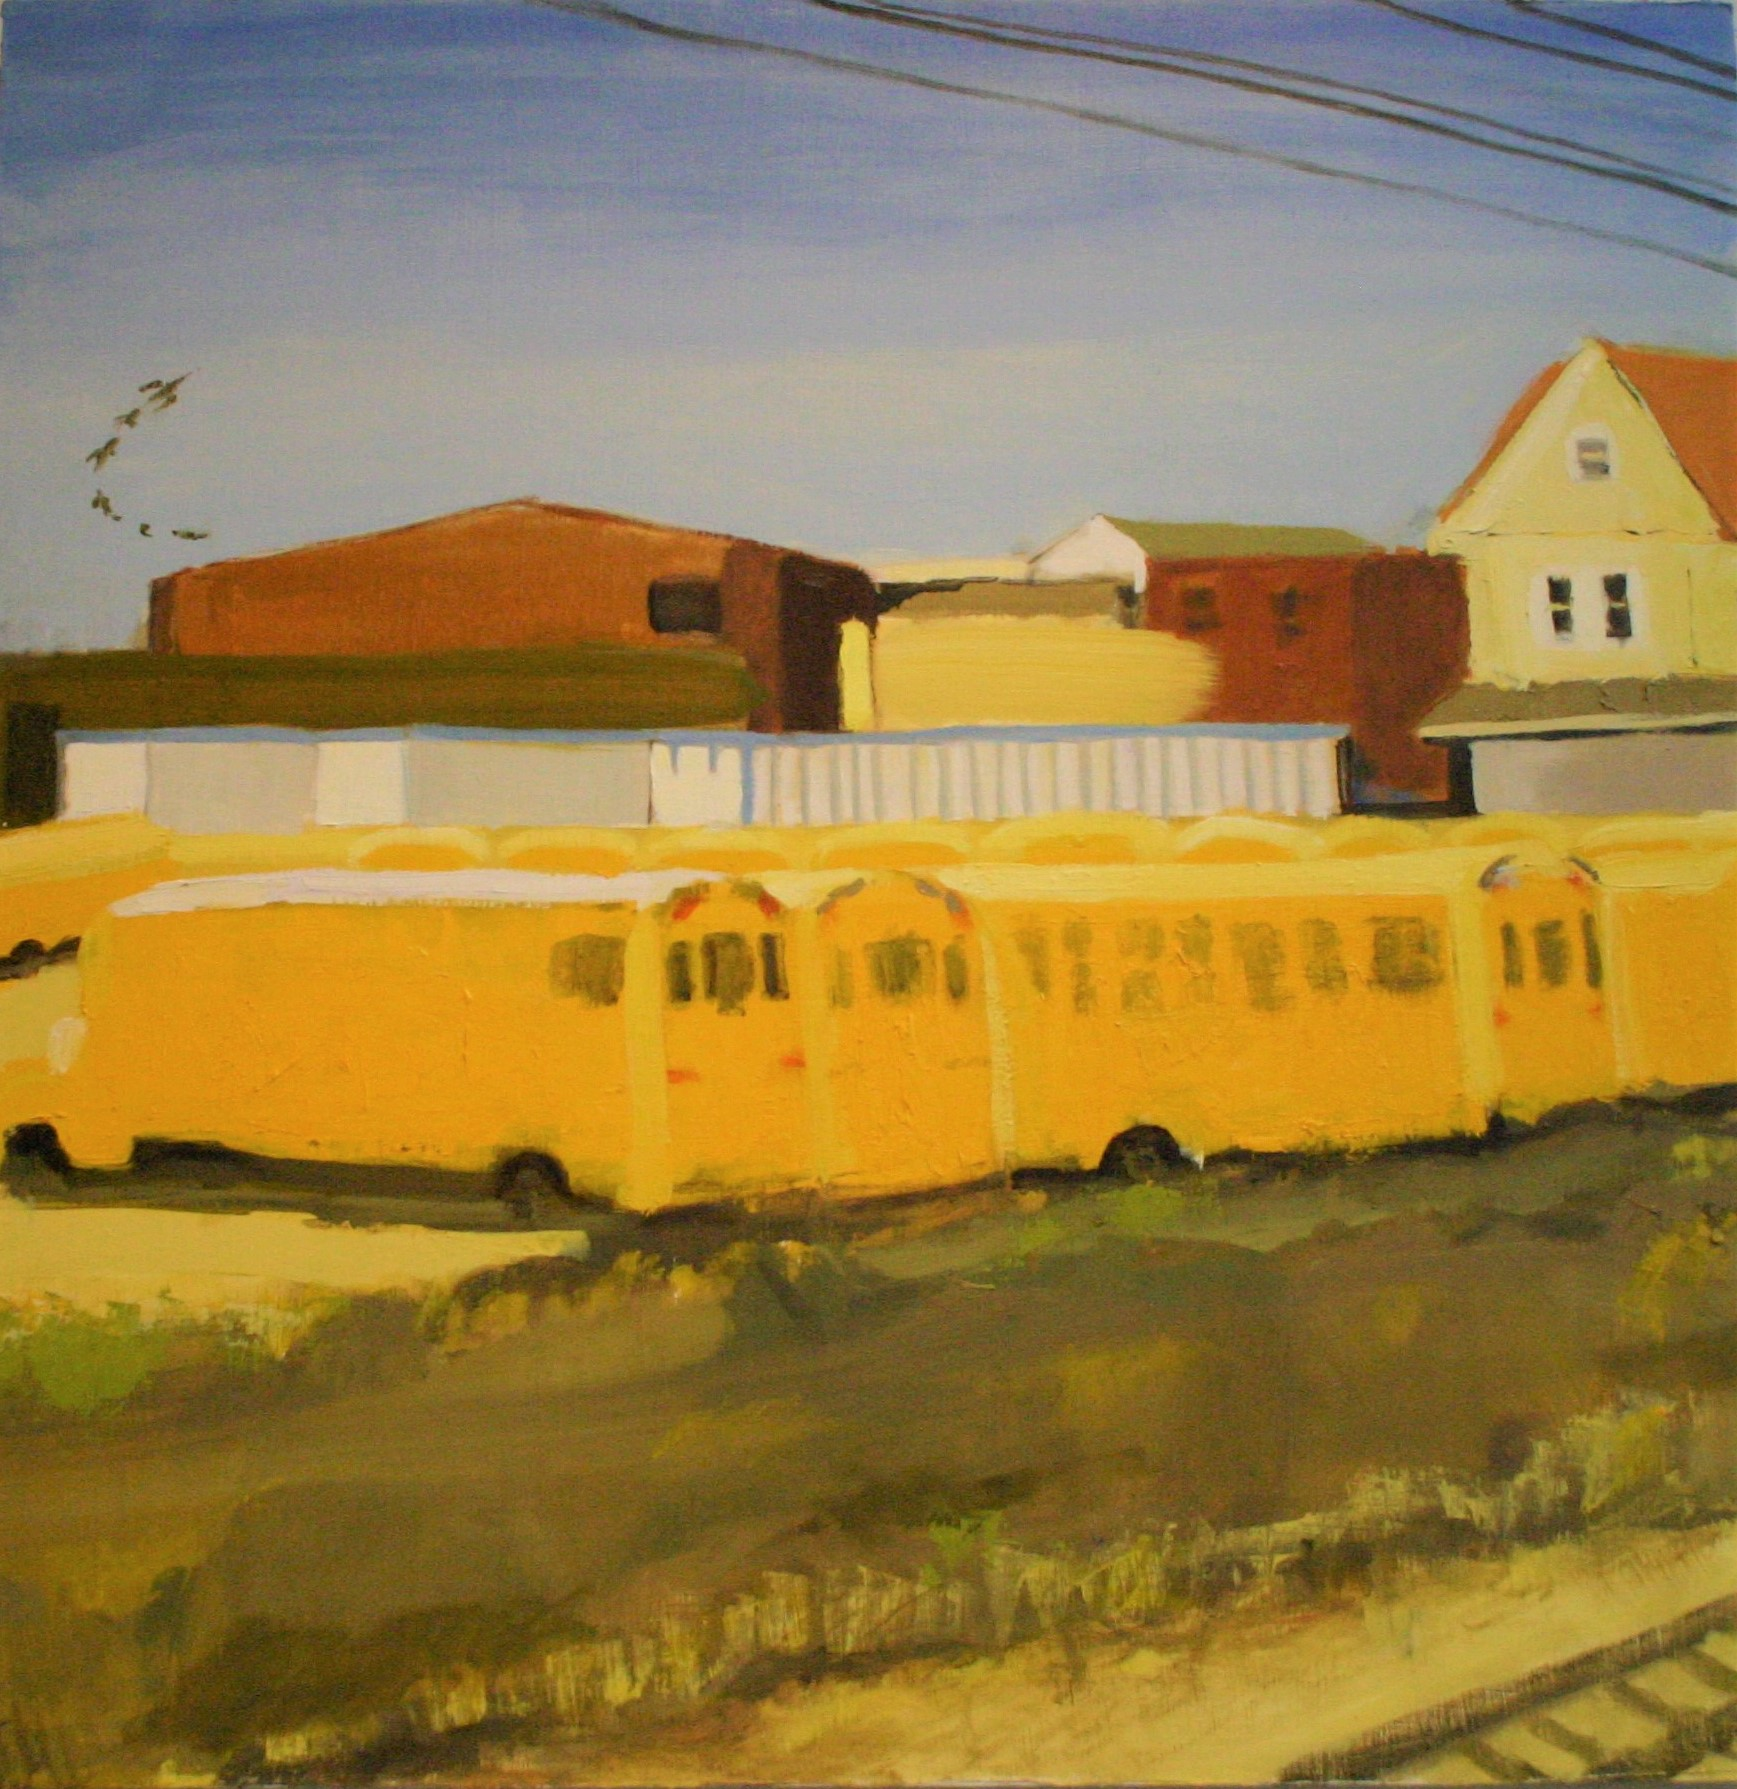 School Bus Landscape, 36 by 36, Oil on Panel